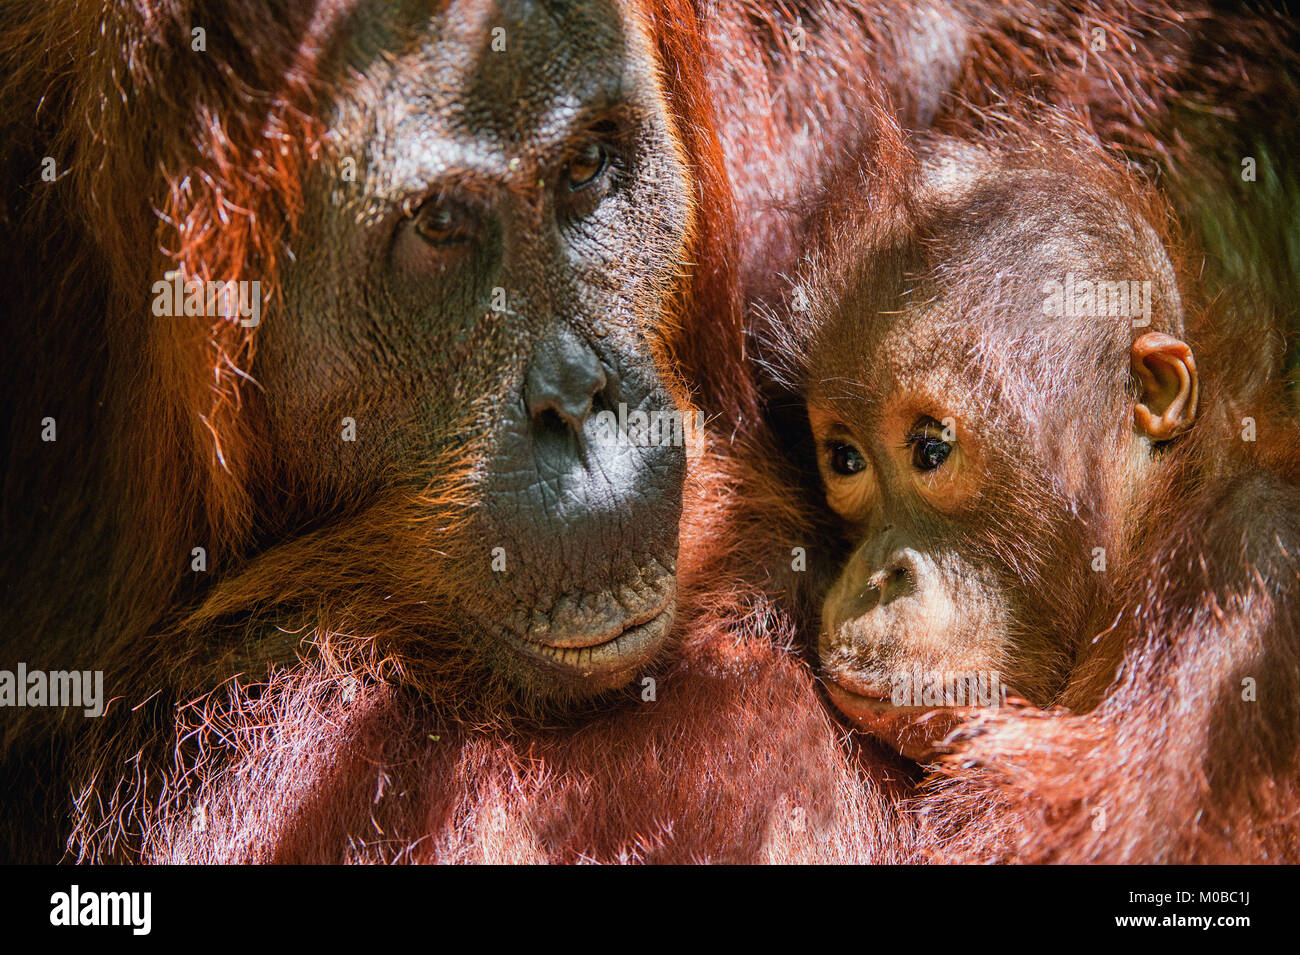 Cub sucking milk from orangutan mom. Mother orangutan and cub in a natural habitat. Bornean orangutan (Pongo pygmaeus Stock Photo